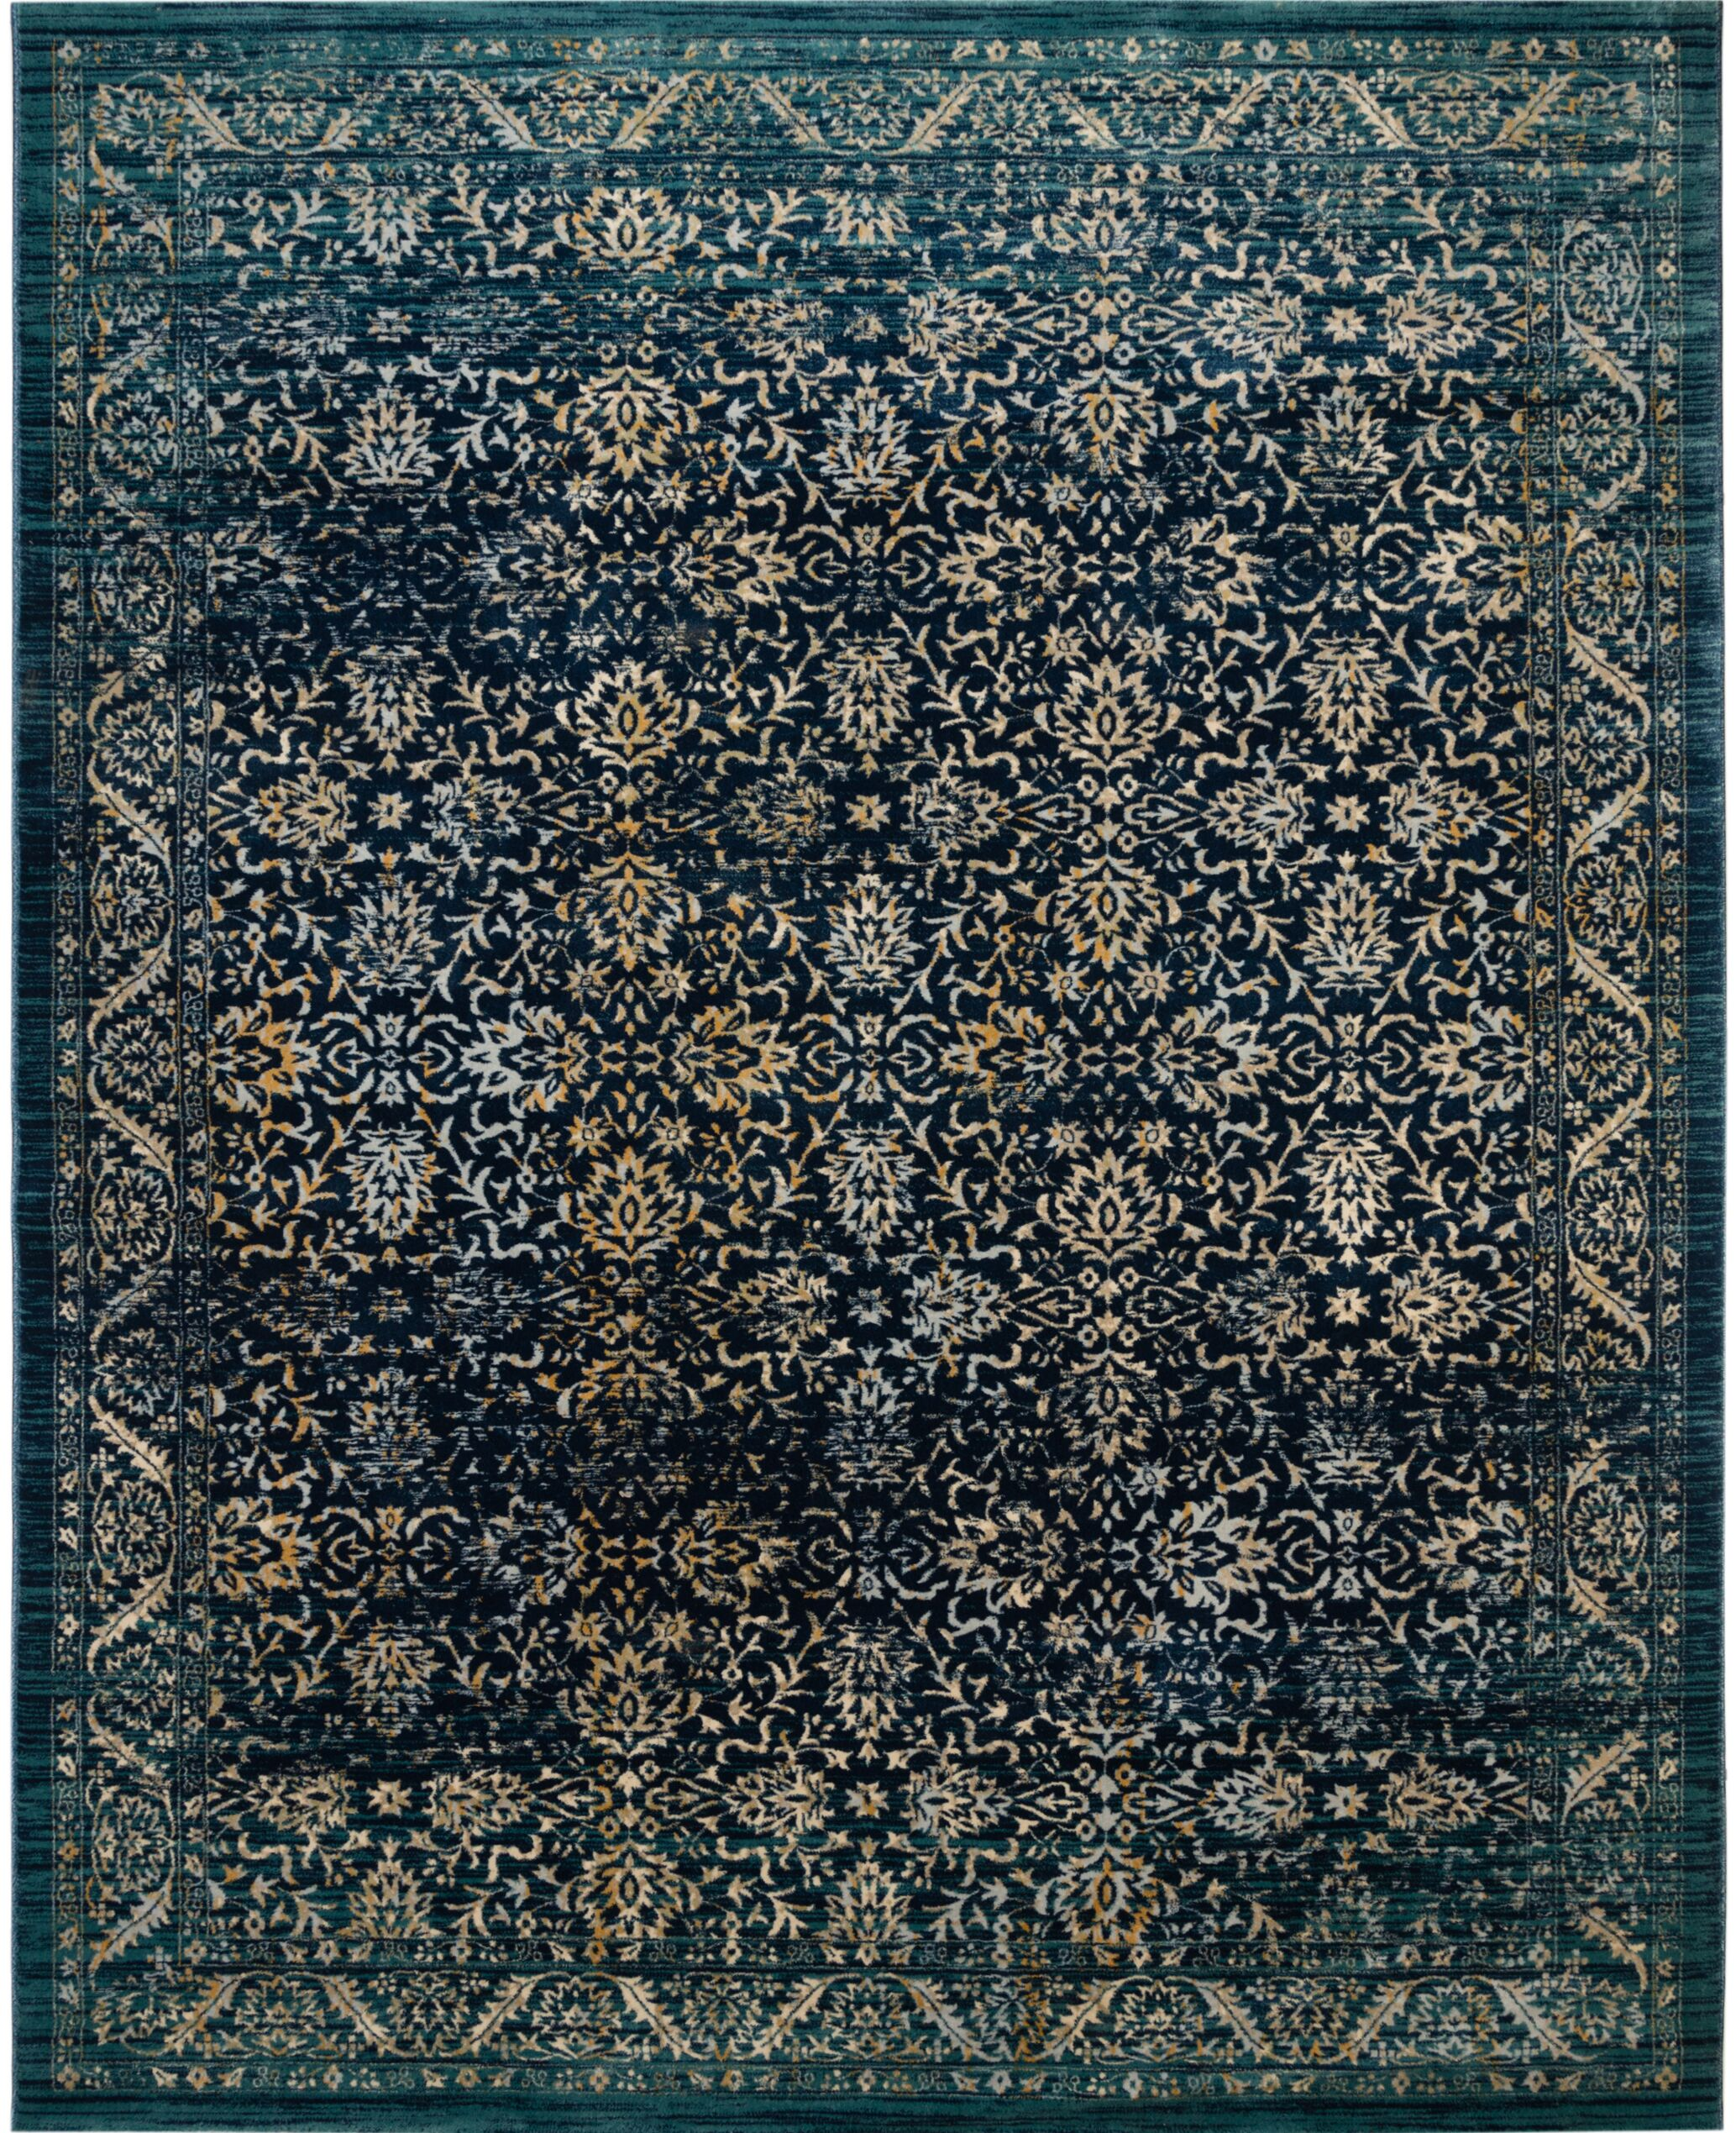 Elson Cream/Rust Area Rug Rug Size: 8'6